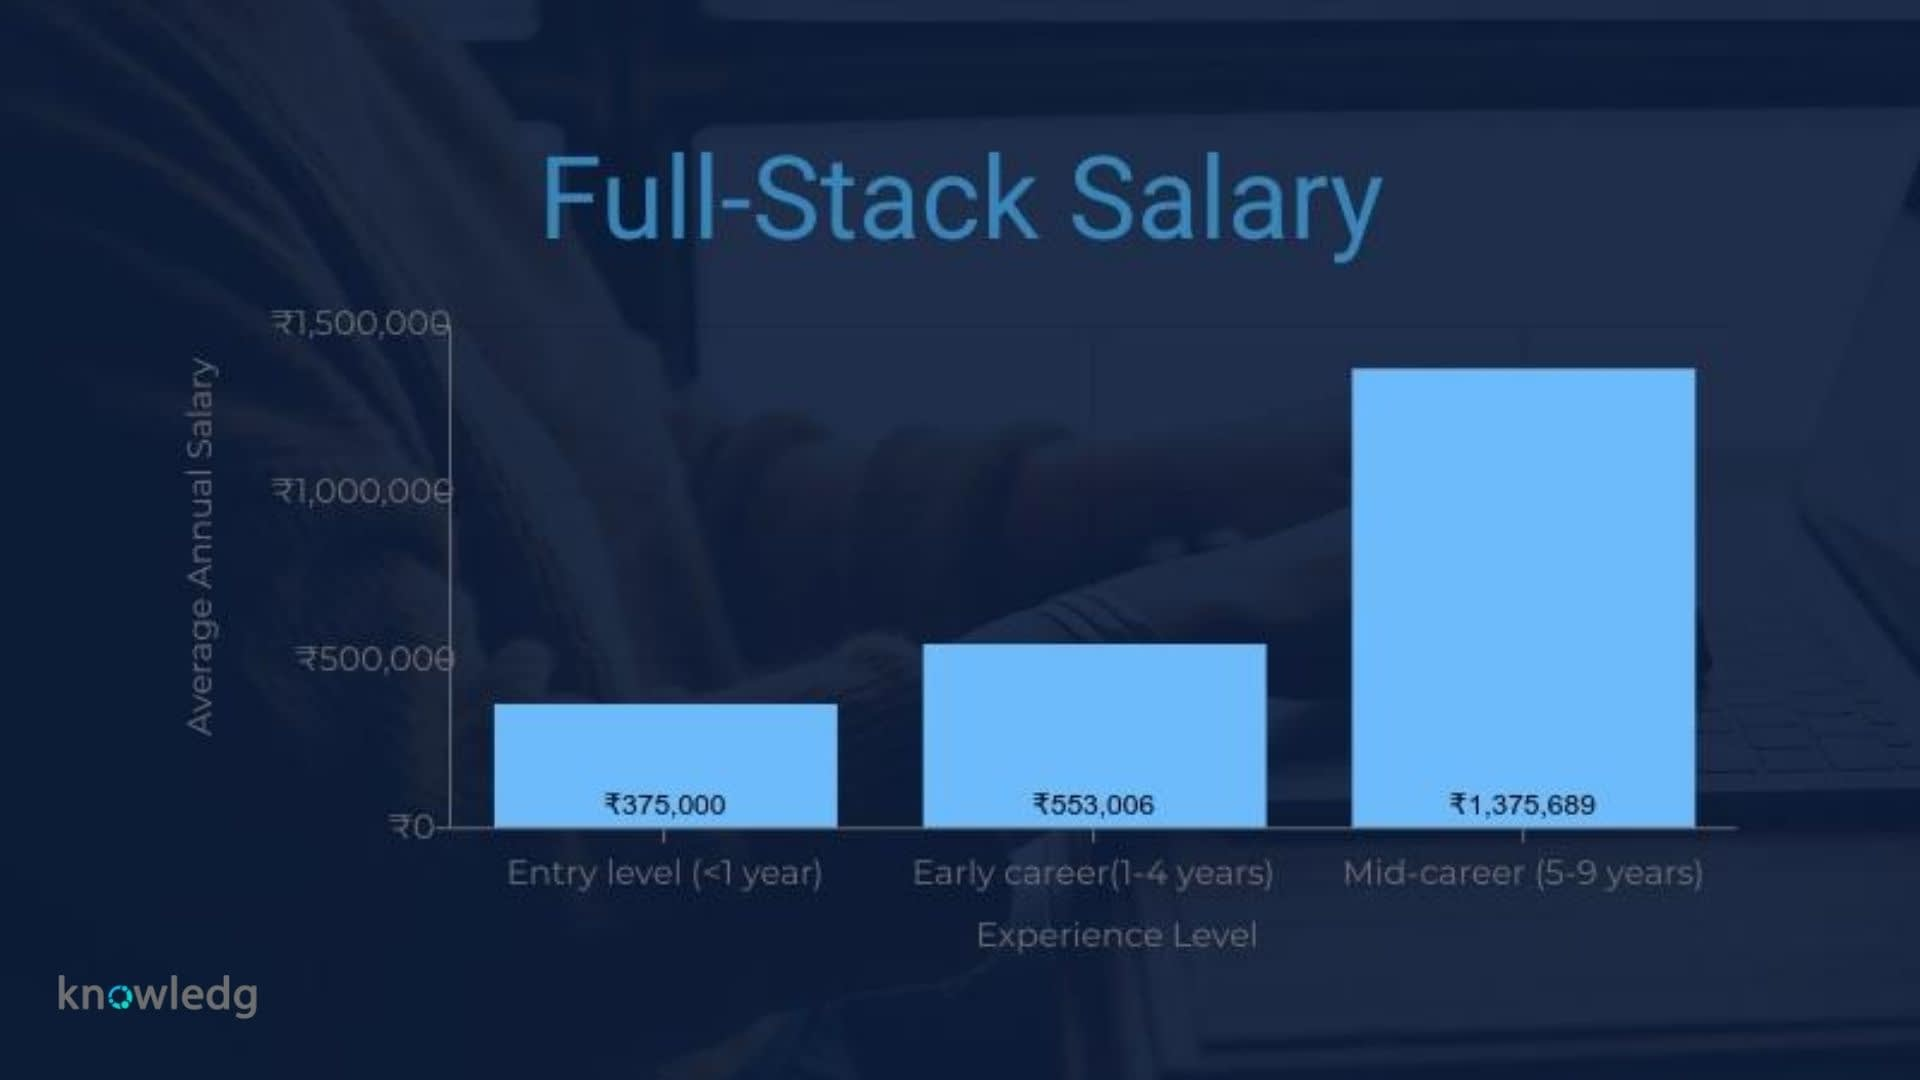 A Surge in Demand for Full-Stack Developers